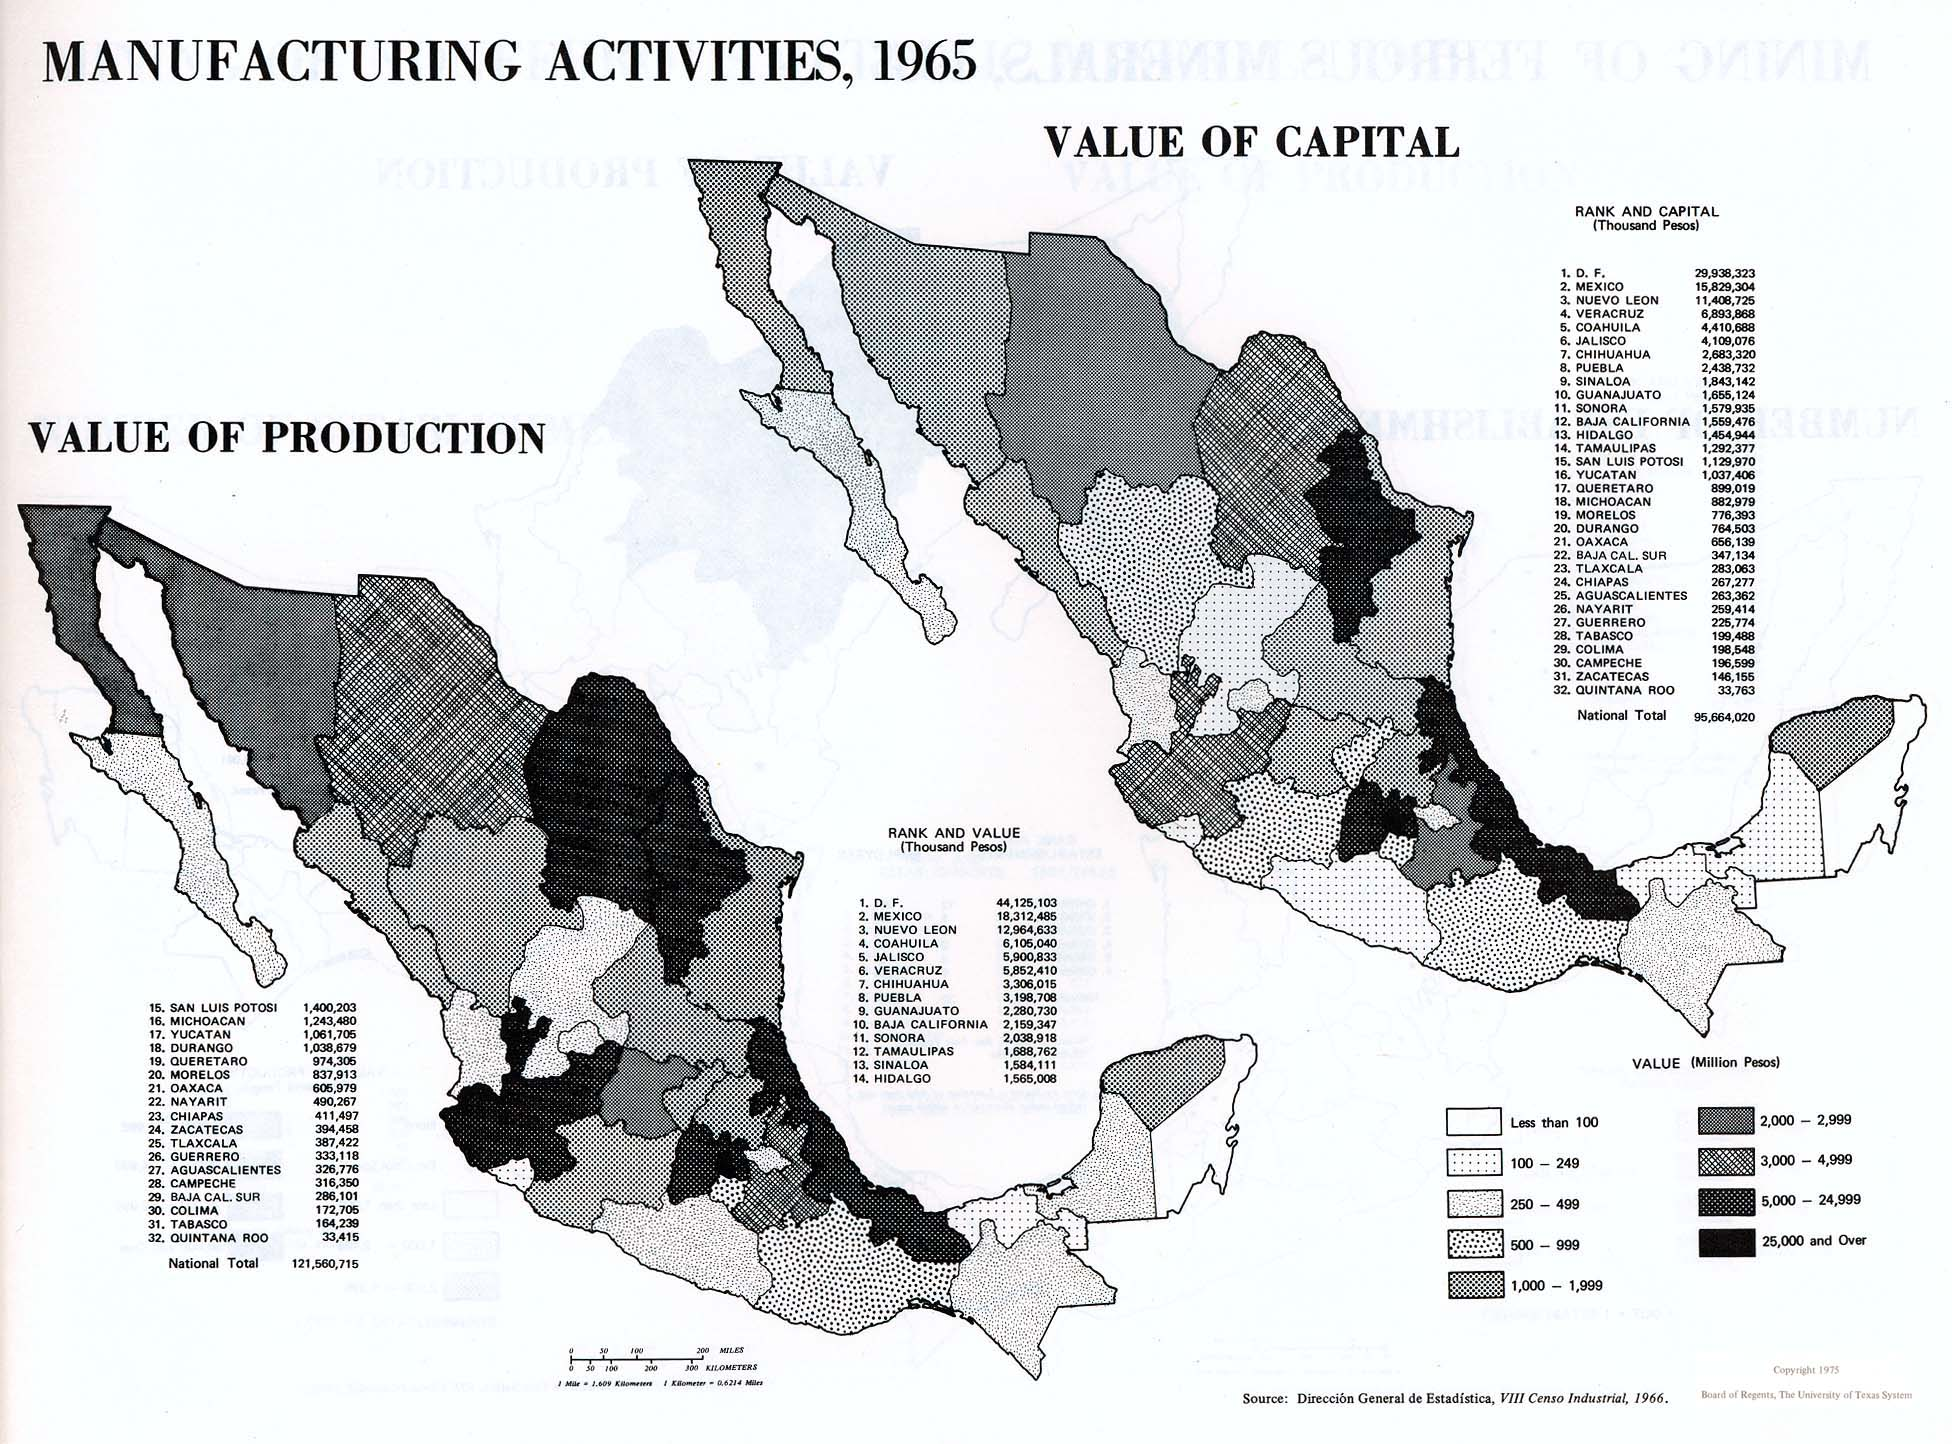 Manufacturing activities in Mexico 1965